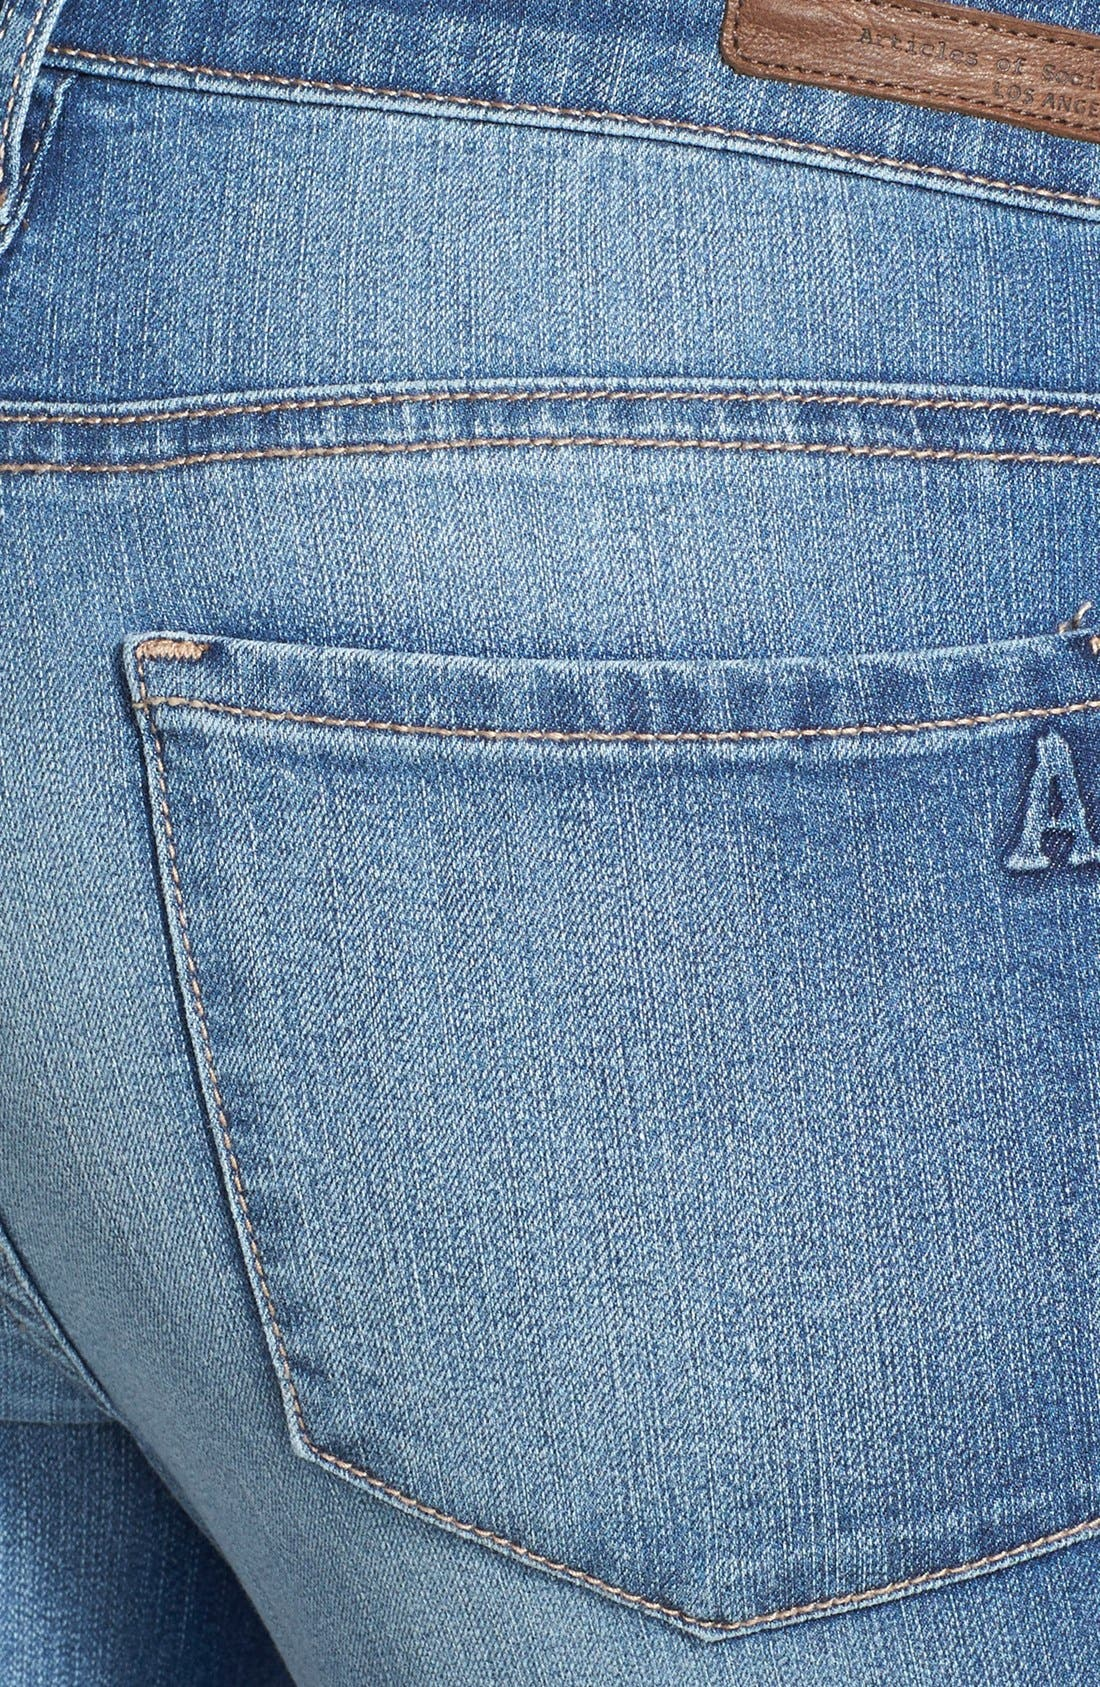 Alternate Image 3  - Articles of Society Destroyed Skinny Jeans (Medium)